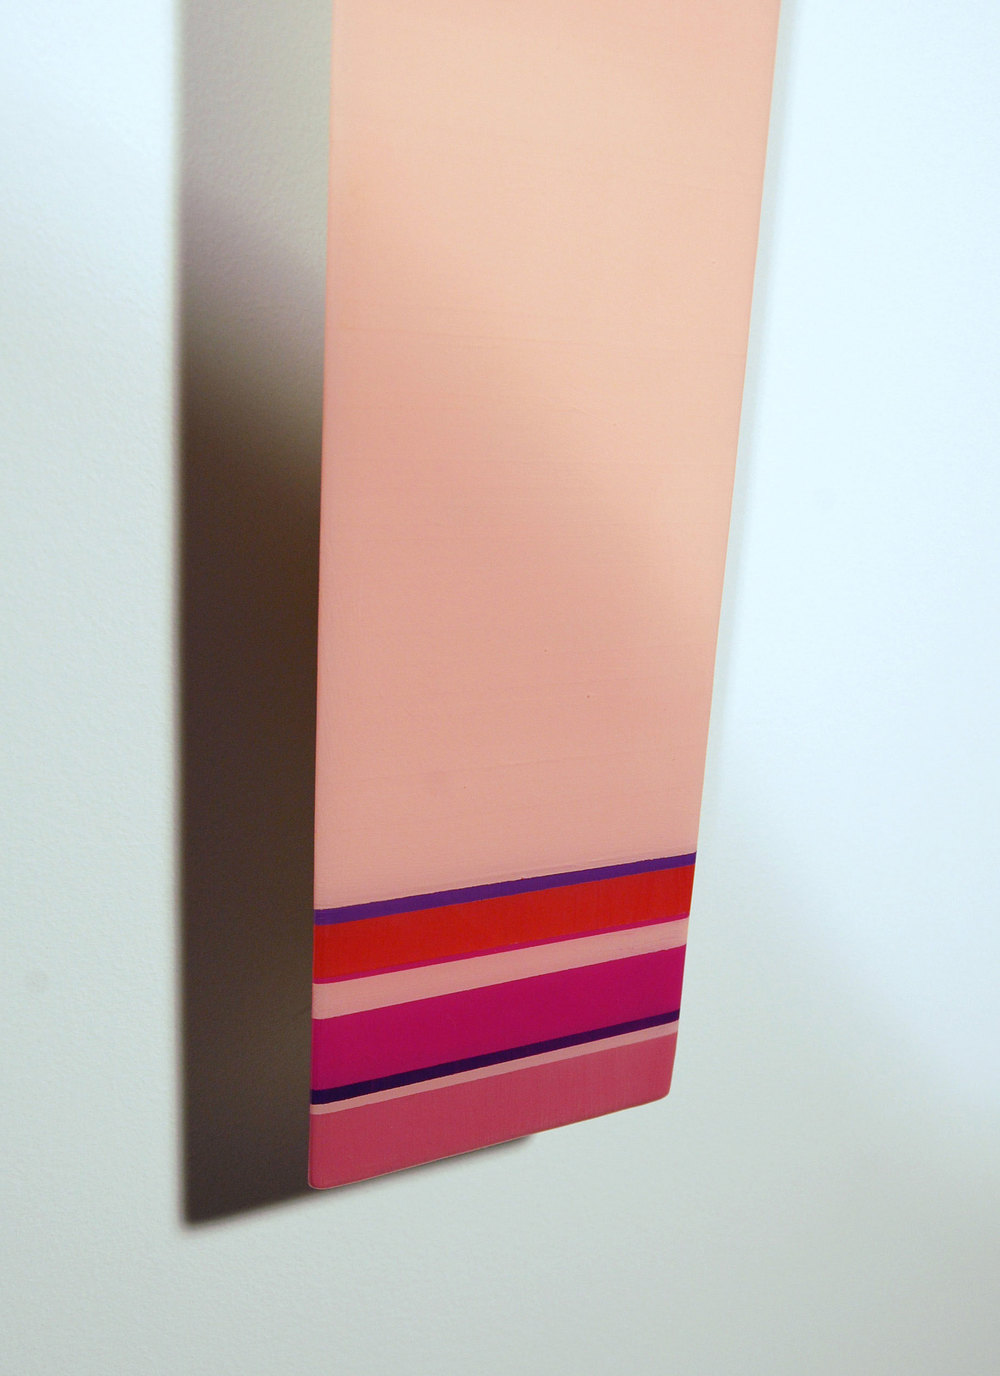 "Leaner L6  - Acrylic, Cherry, select pine, and UV resin - Dim: 82"" x 4.5"" x 2"" / 208 x 11 x 6 cm - DETAIL"